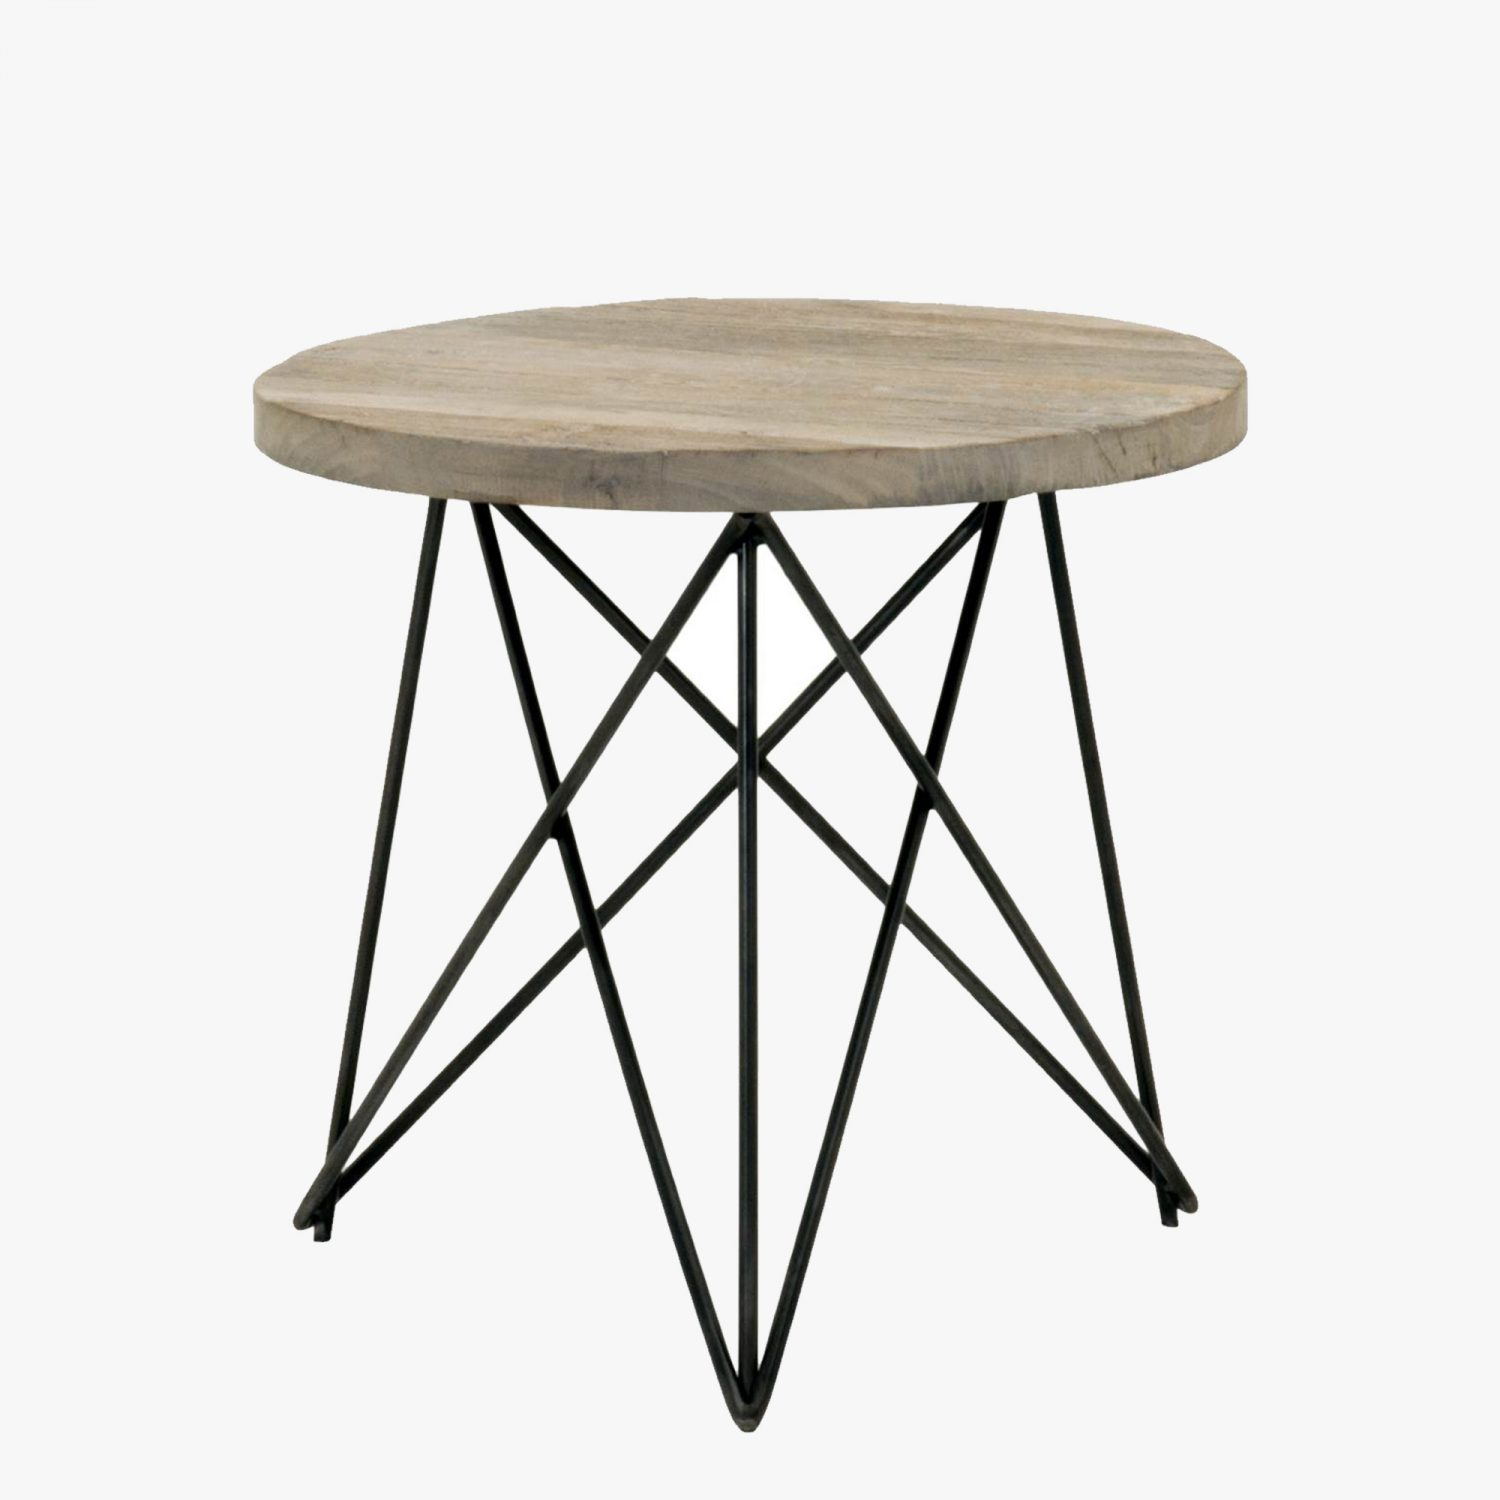 castille reclaimed wood accent table tables dear keaton side trestle bench seat patchwork runners free patterns gray dining outdoor furniture ideas diy white plastic cherry end